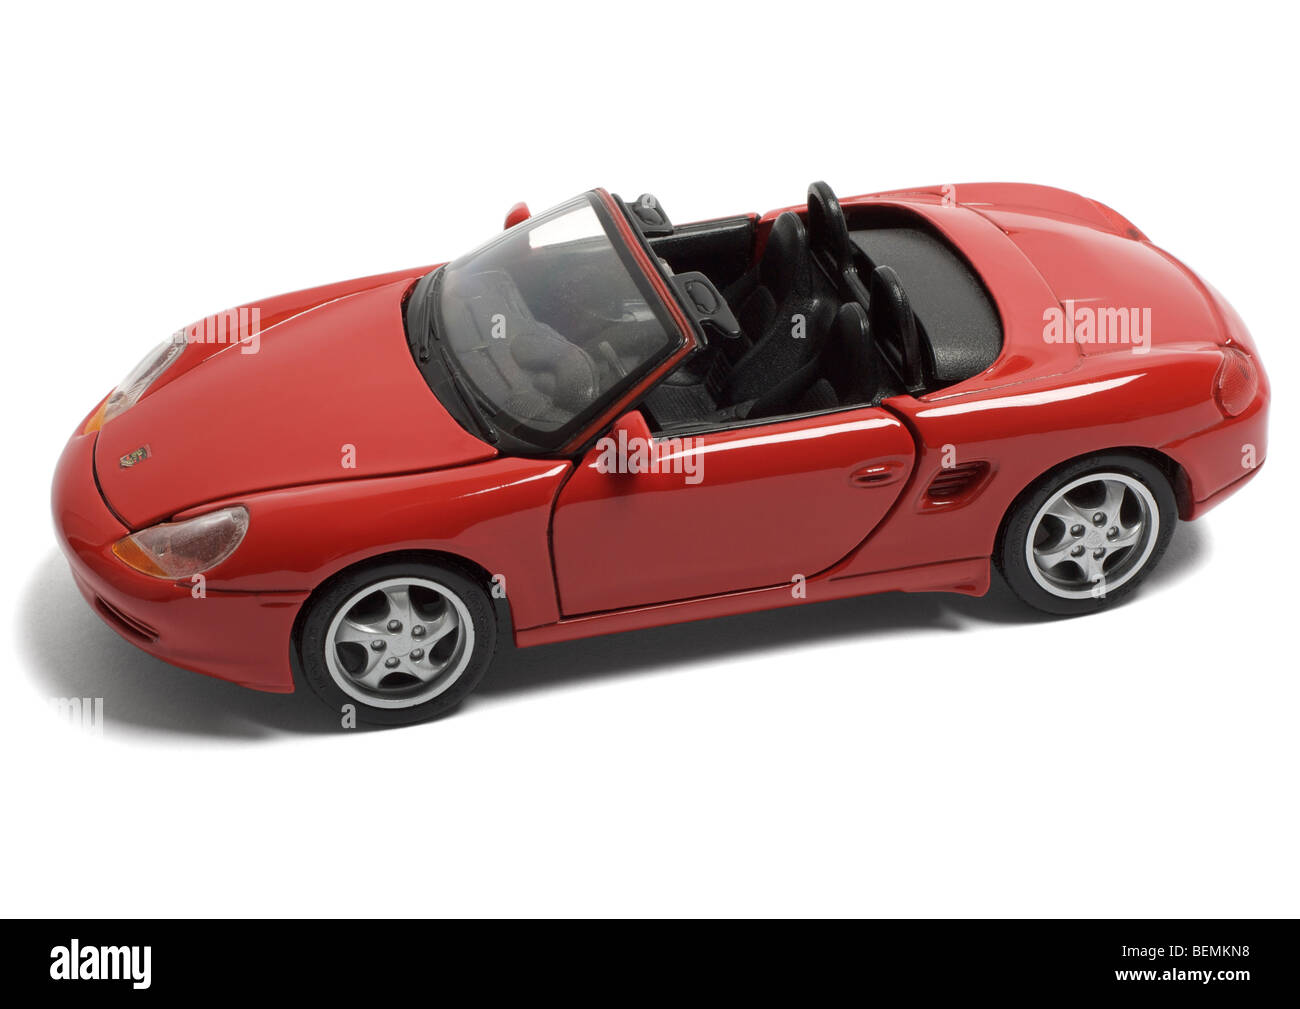 porsche boxster red html with Stock Photo Red Porsche Boxster Convertible Toy Car On White Background 26270084 on 910661 2015 Porsche Boxster Gts together with Page38 furthermore 275093 Paint To S le Ferrari Red further Detail 2018 Porsche 718 boxster Roadster New 16741390 also 235360 Head Temp Sensor Replacement Urgent.